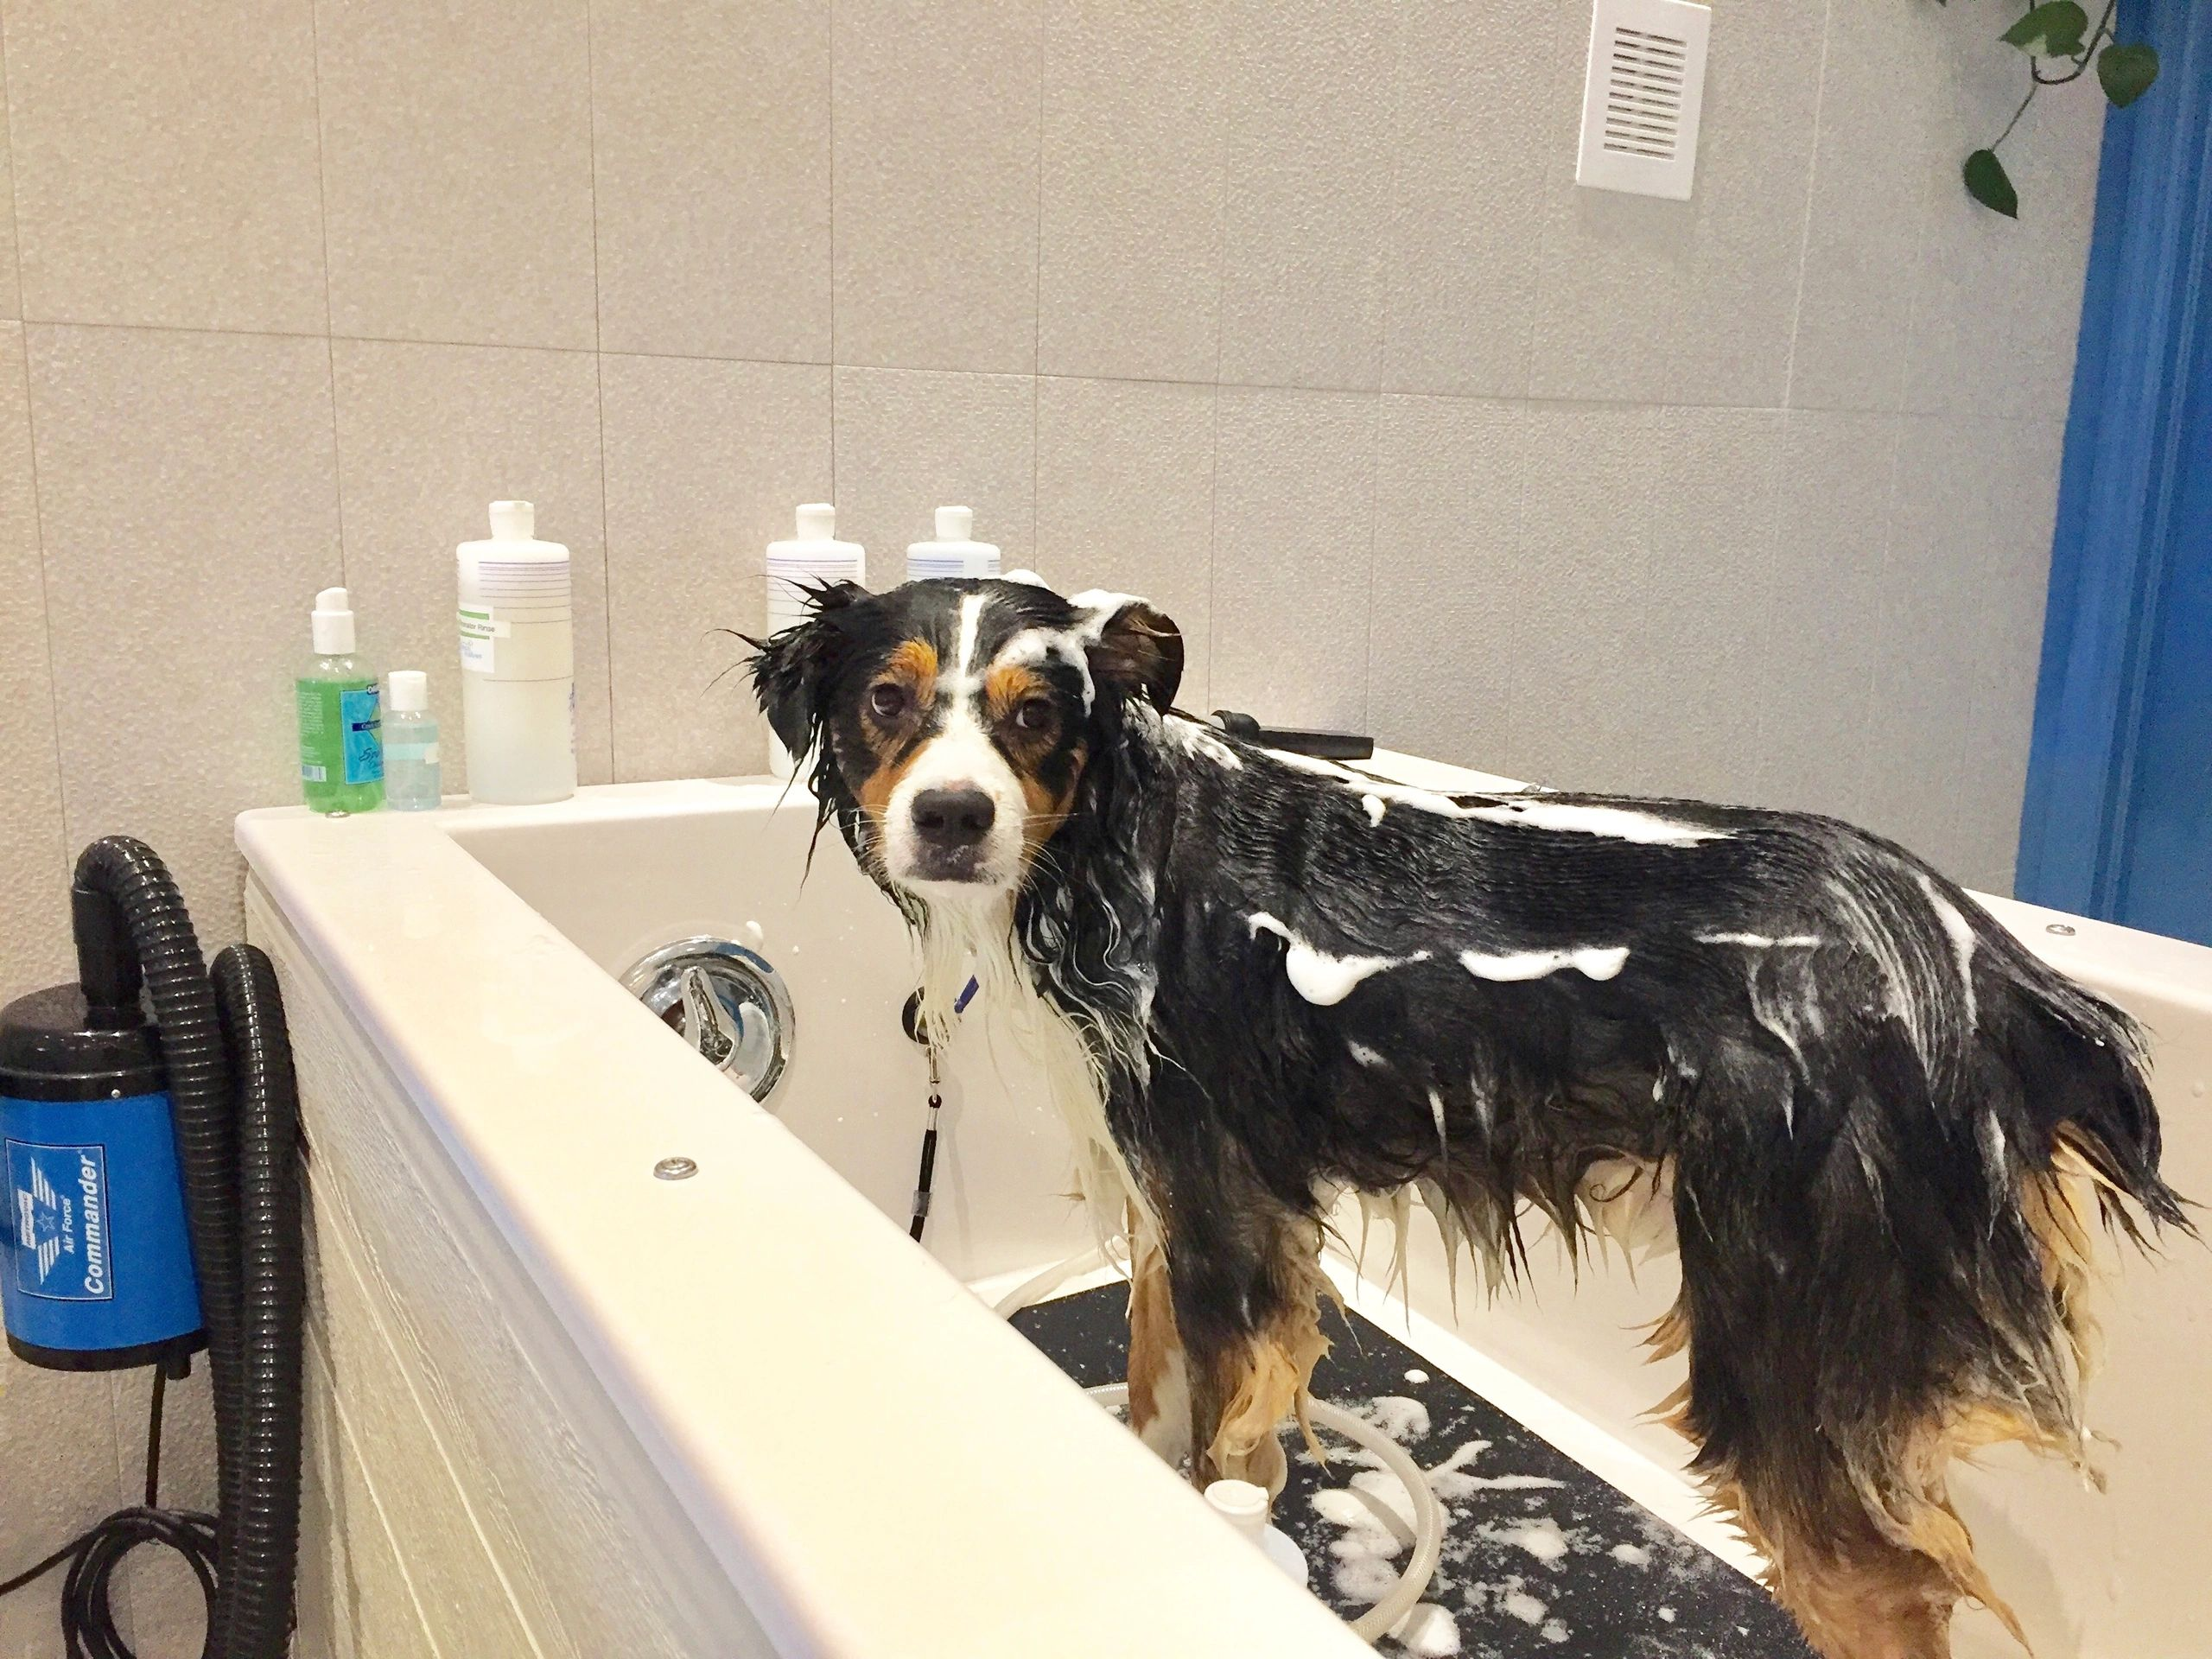 Barks bubbles diy dog grooming self service dog wash barks barks bubbles diy dog grooming self service dog wash barks bubbles diy solutioingenieria Images